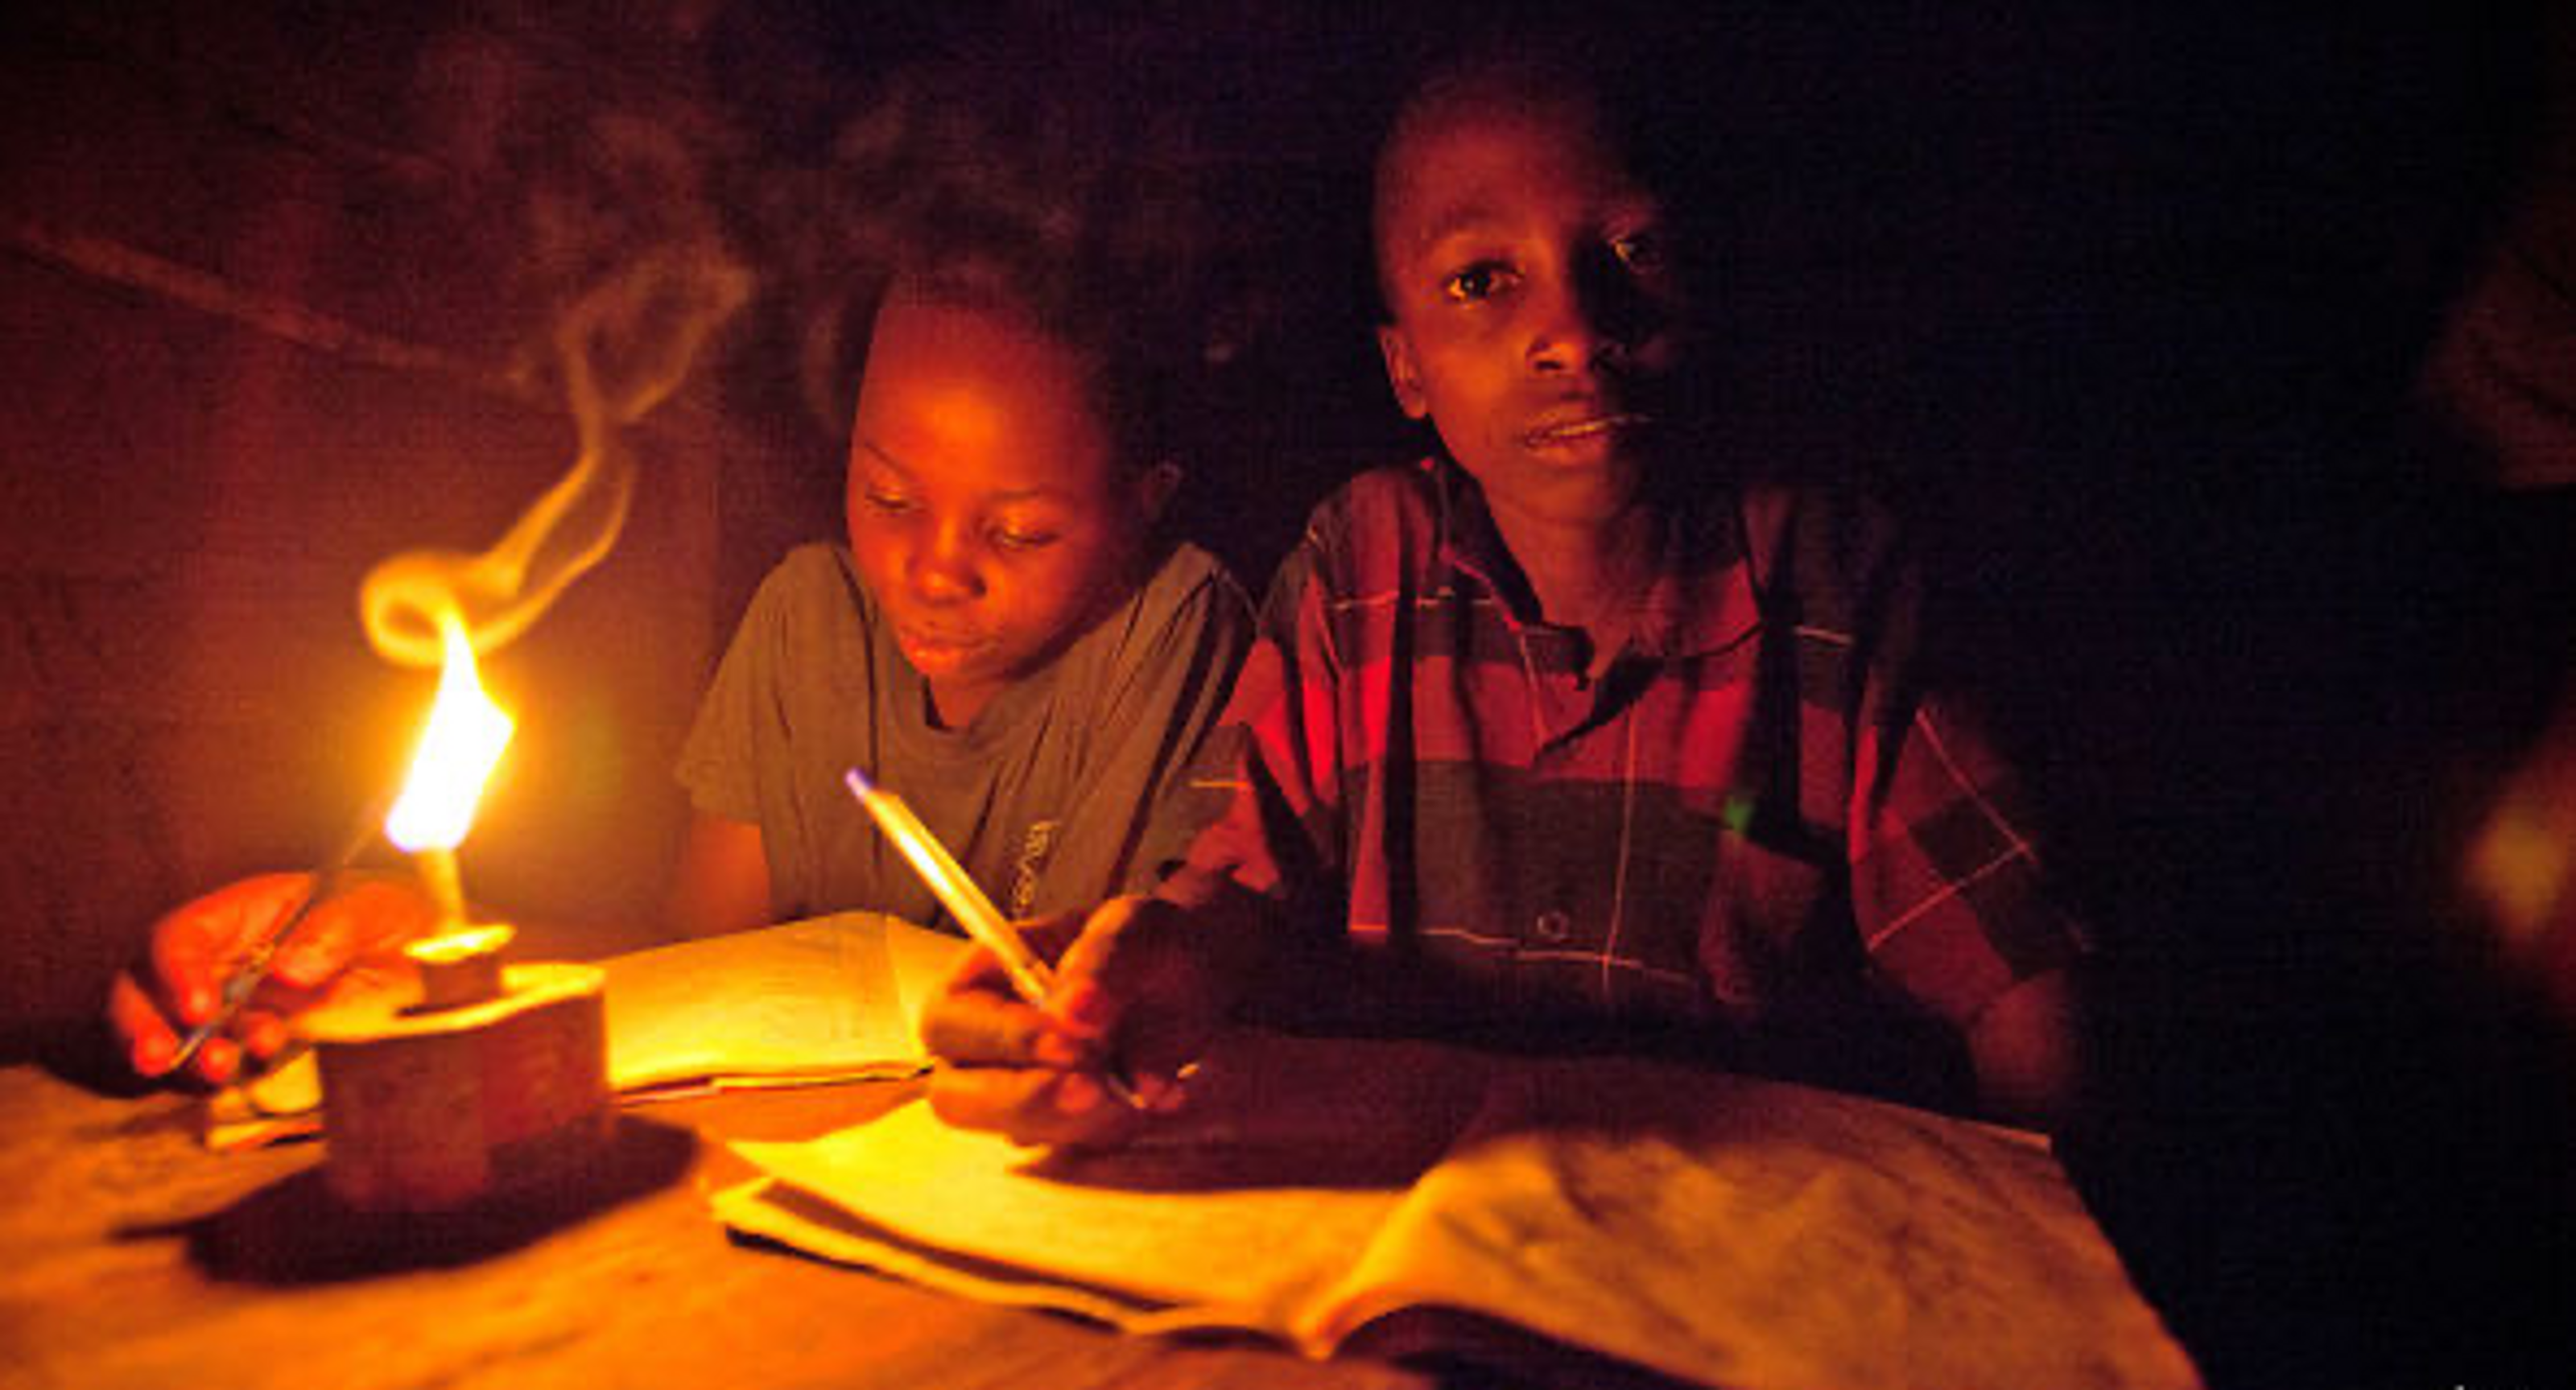 Some 1.2 billion people have no access to power